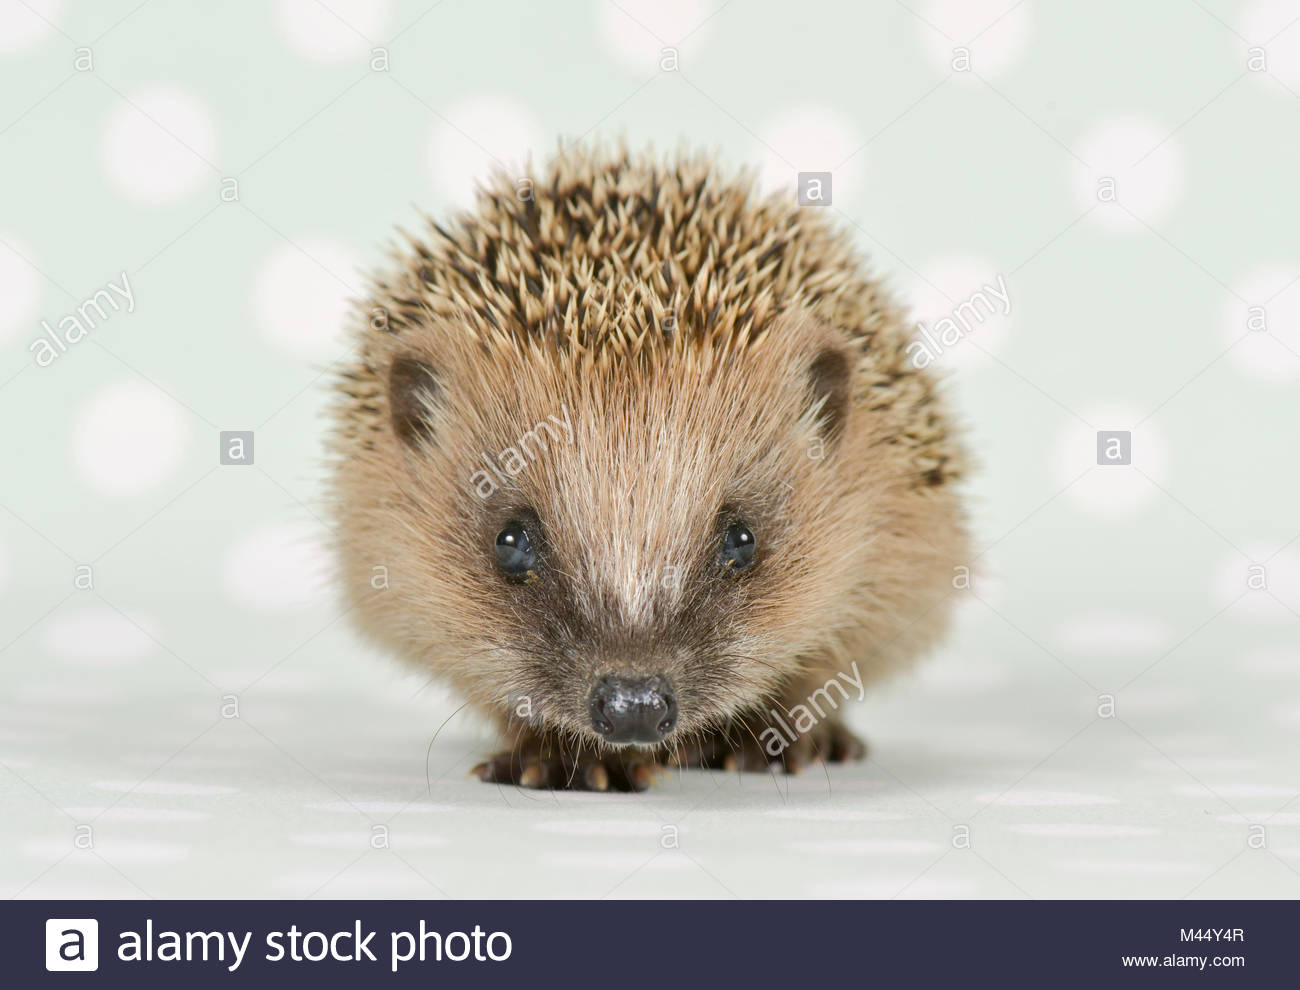 European Hedgehog (Erinaceus europaeus). Young (4 weeks old), walking. Studio picture, seen against a gray background - Stock Image